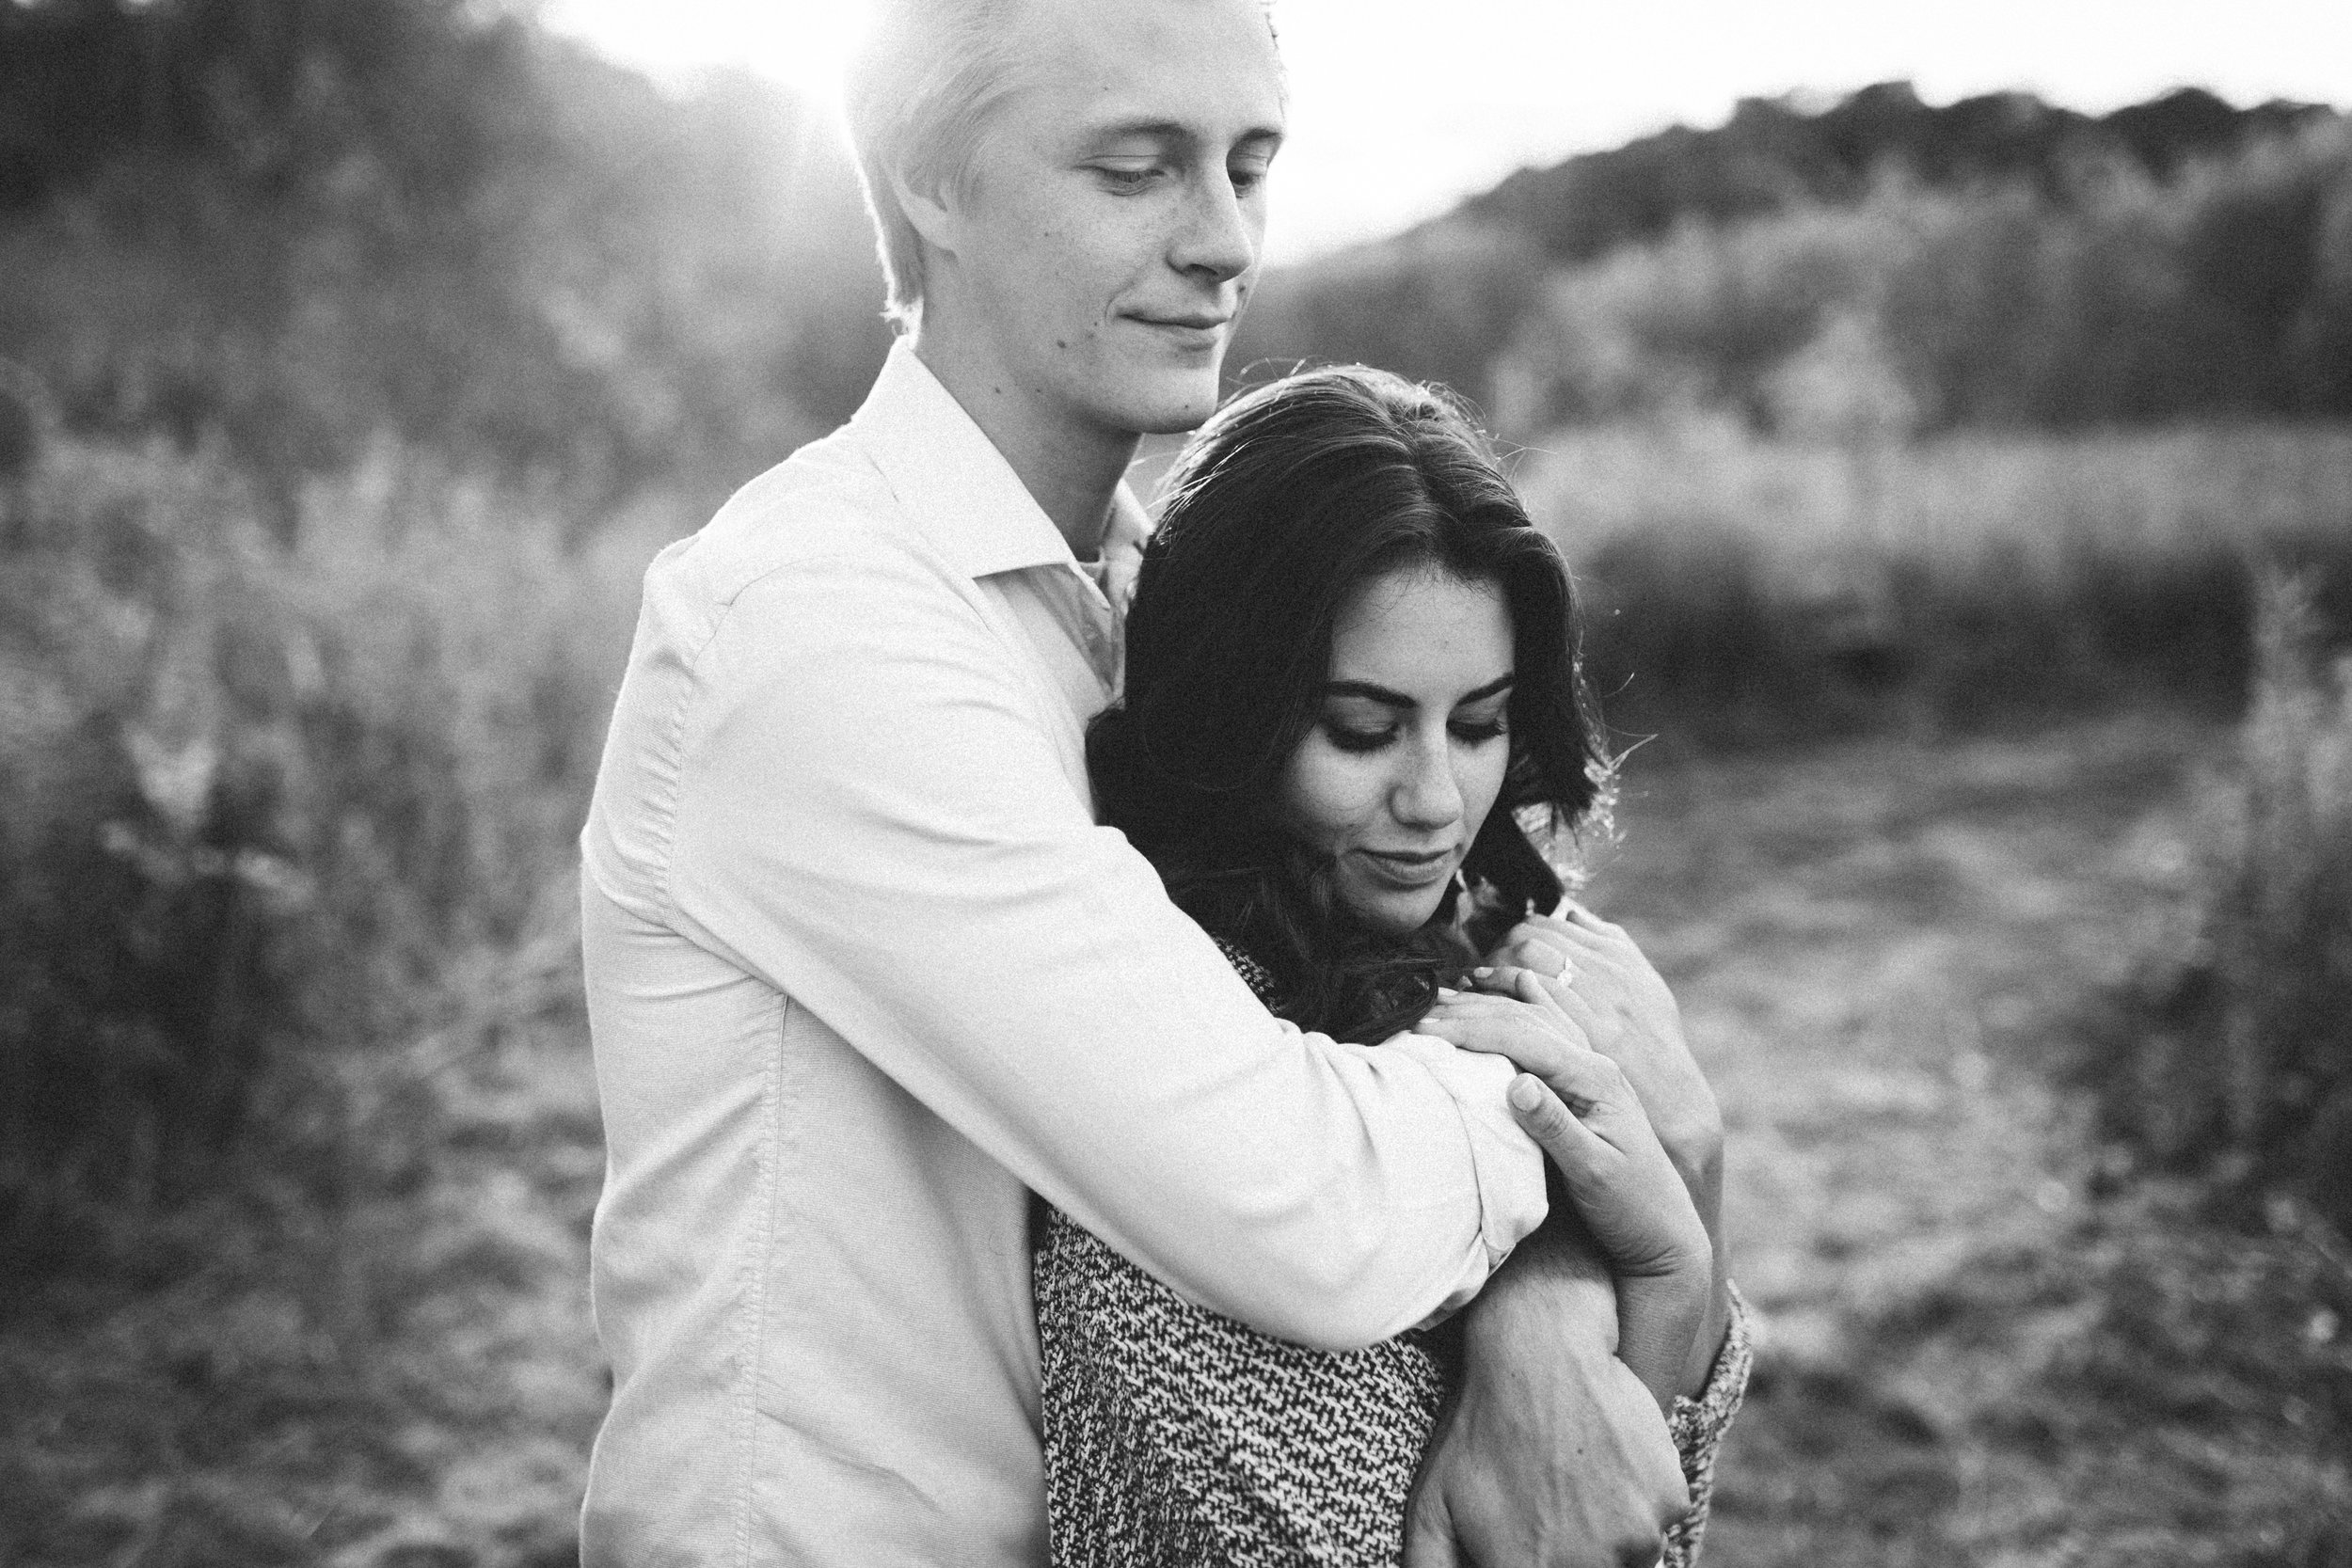 Claire-Rex-Pickar-Engagement-Photography-Collection-316.jpg